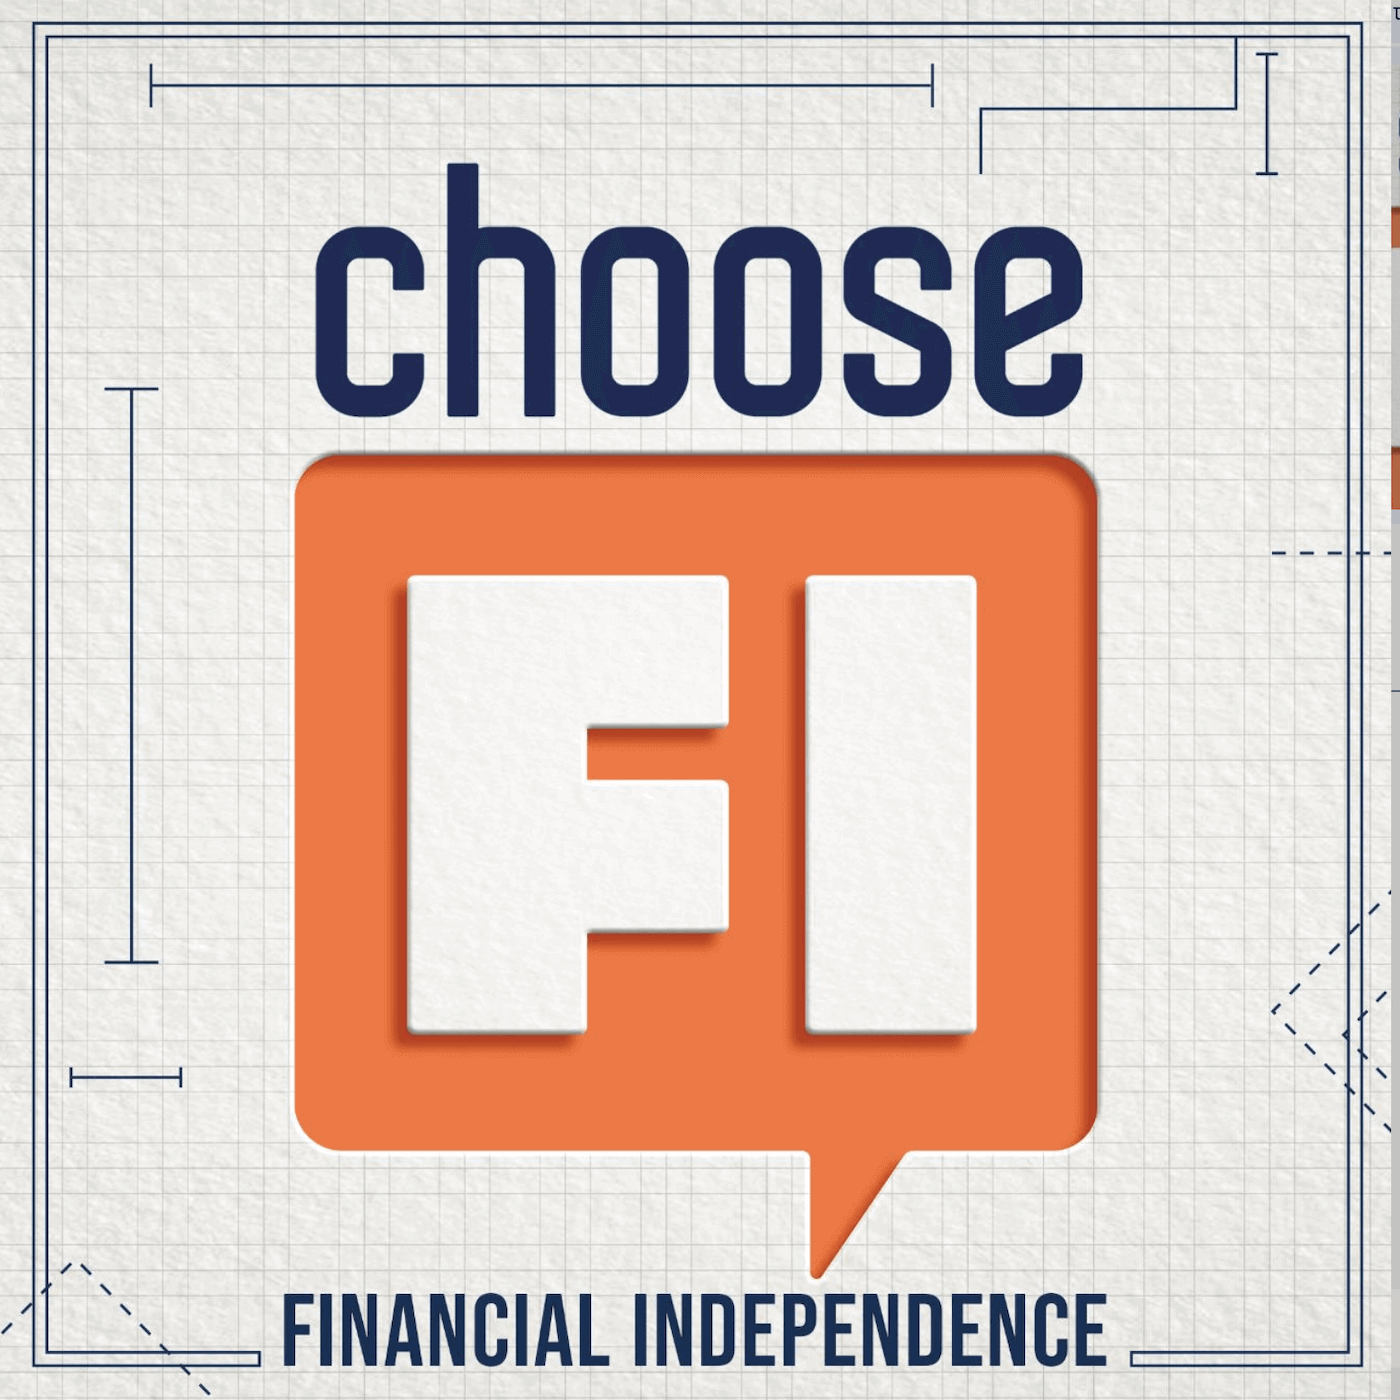 216 | How to make FI more inclusive | With Chris Browning of Popcorn Finance